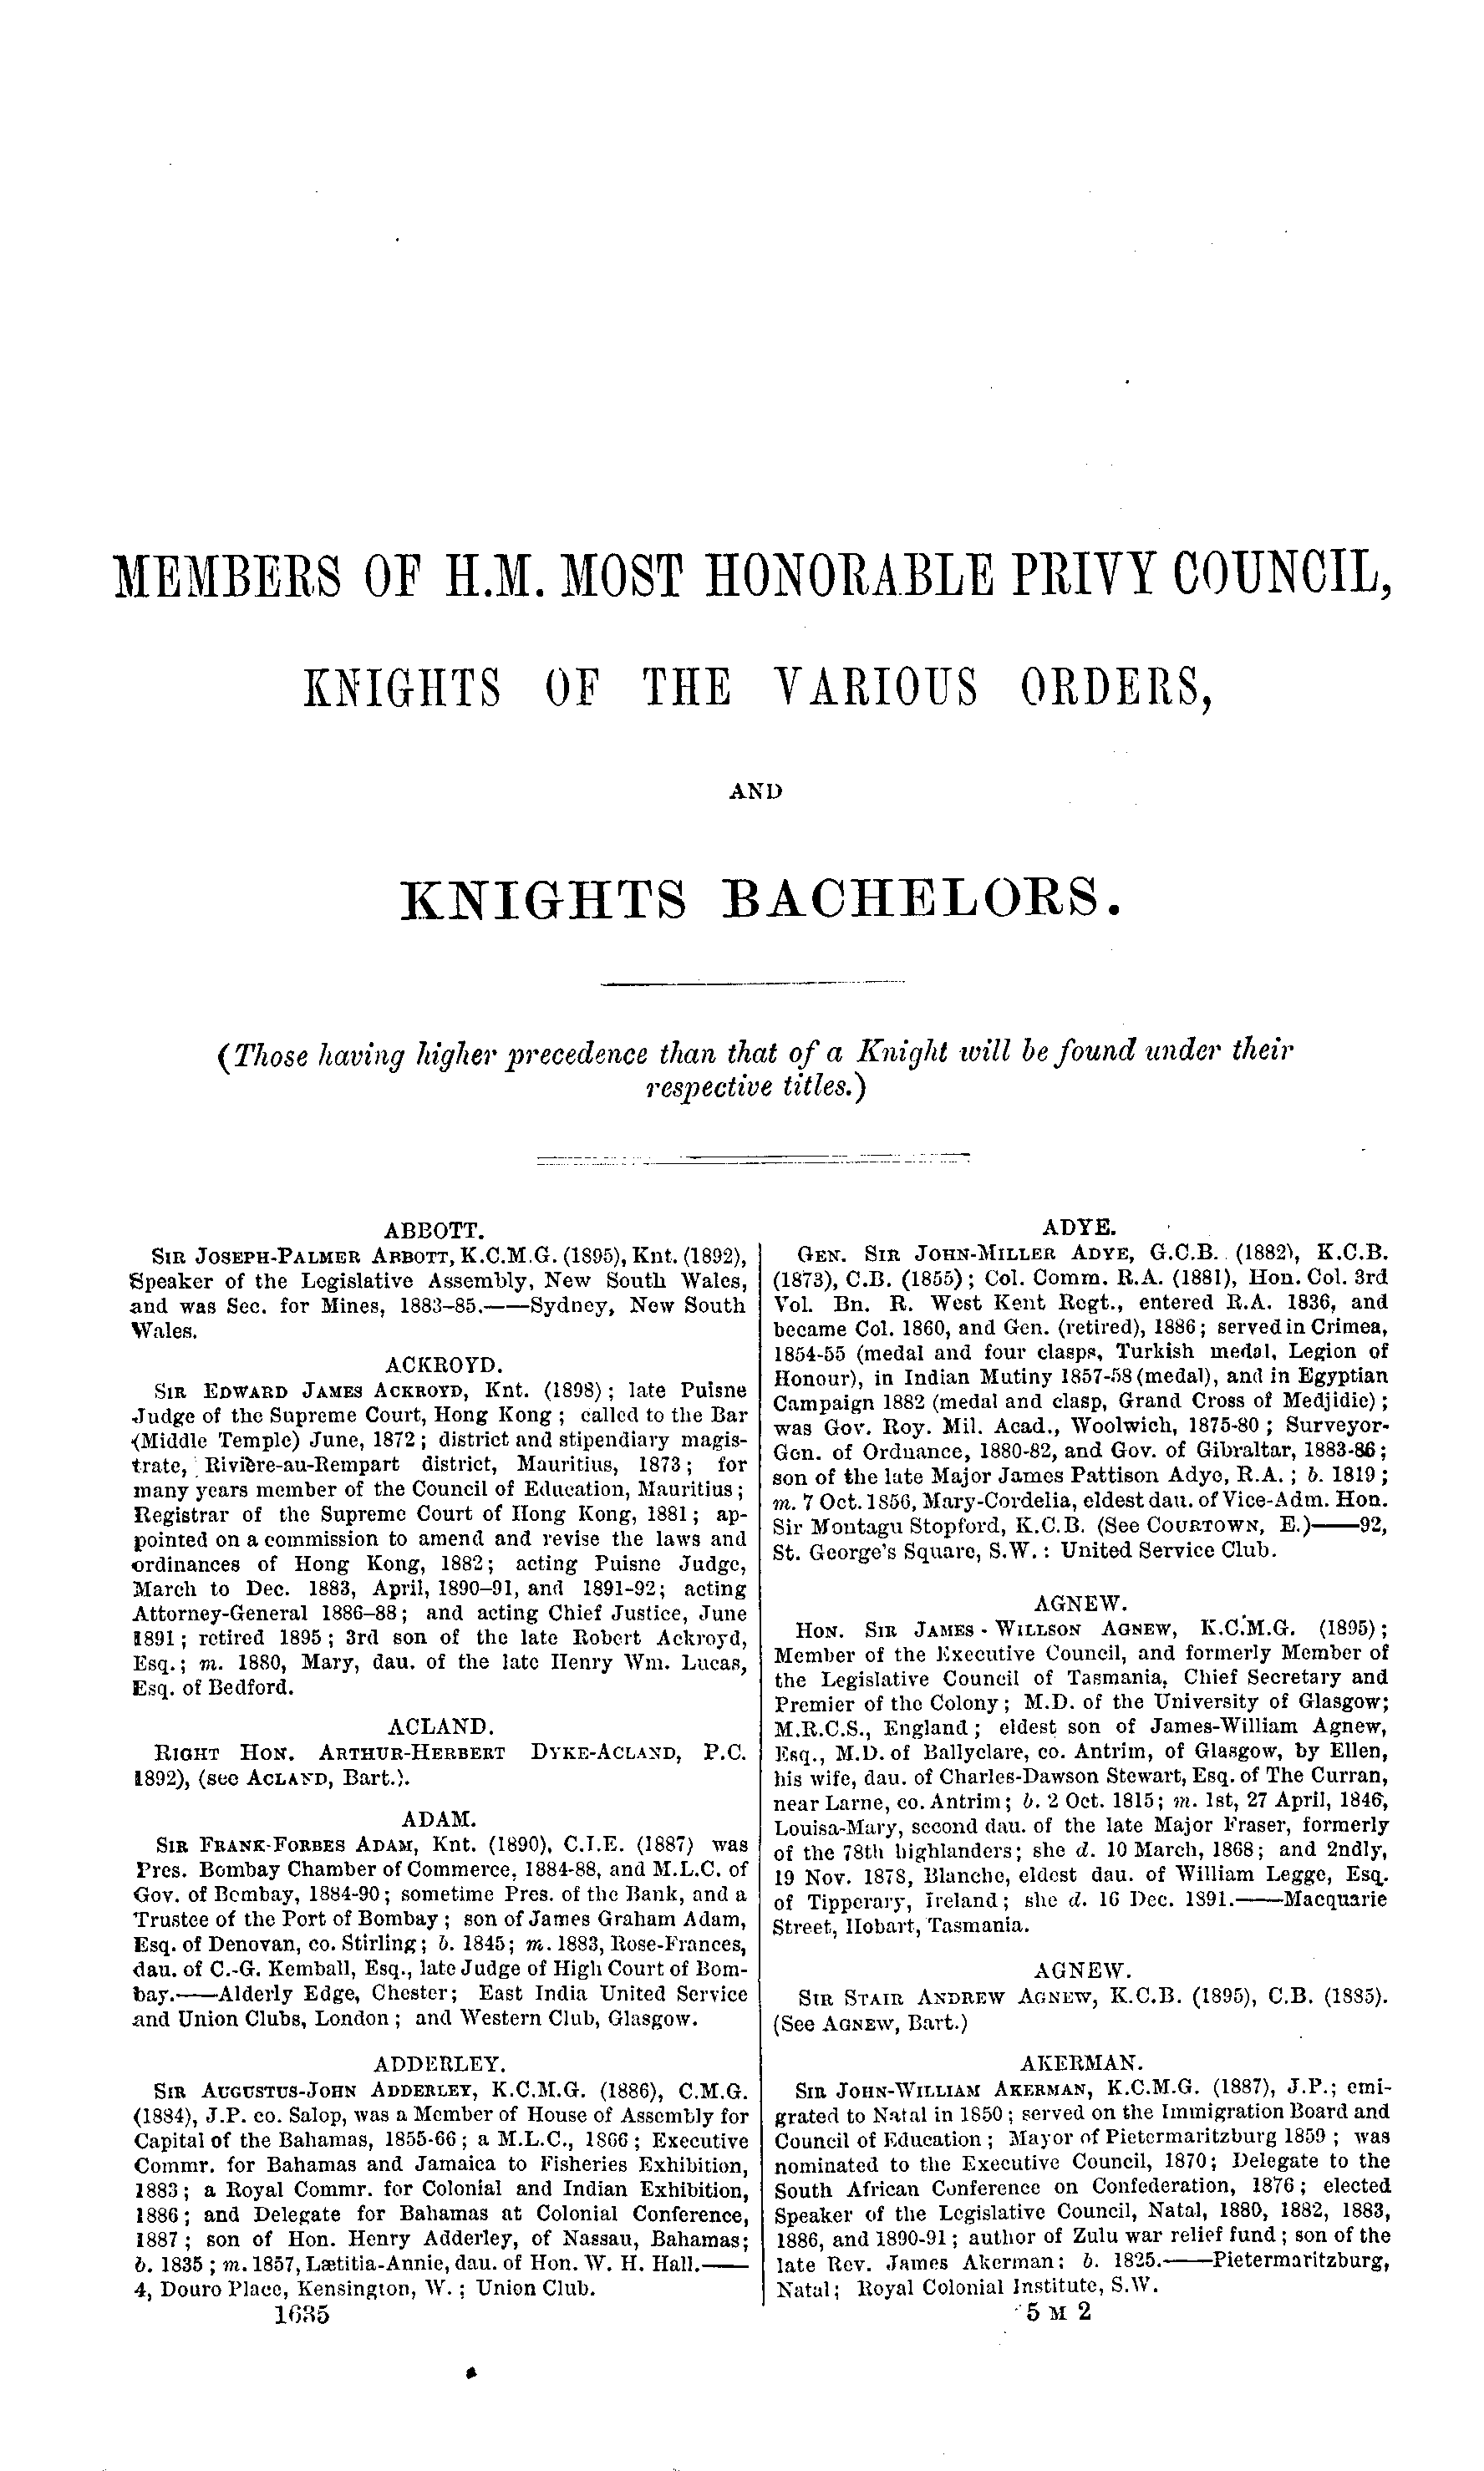 Burke's Peerage, Baronetage, and Knightage 1899 page 1635 - click to open larger version in a new window